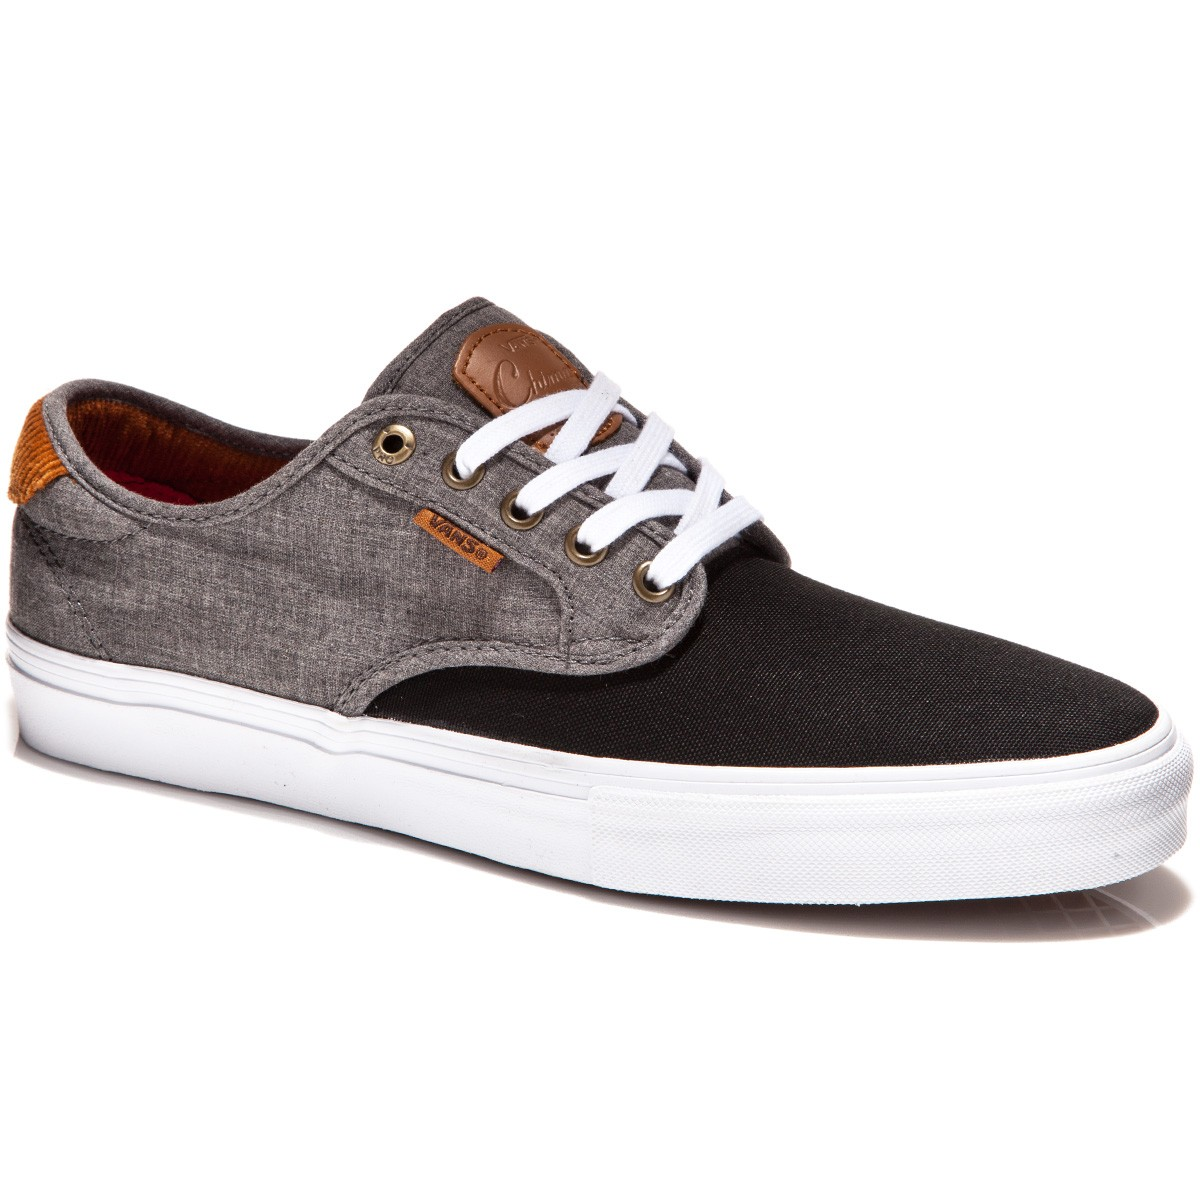 Vans Chima Ferguson Pro Shoes - Cord Black/Chambray - 7.0